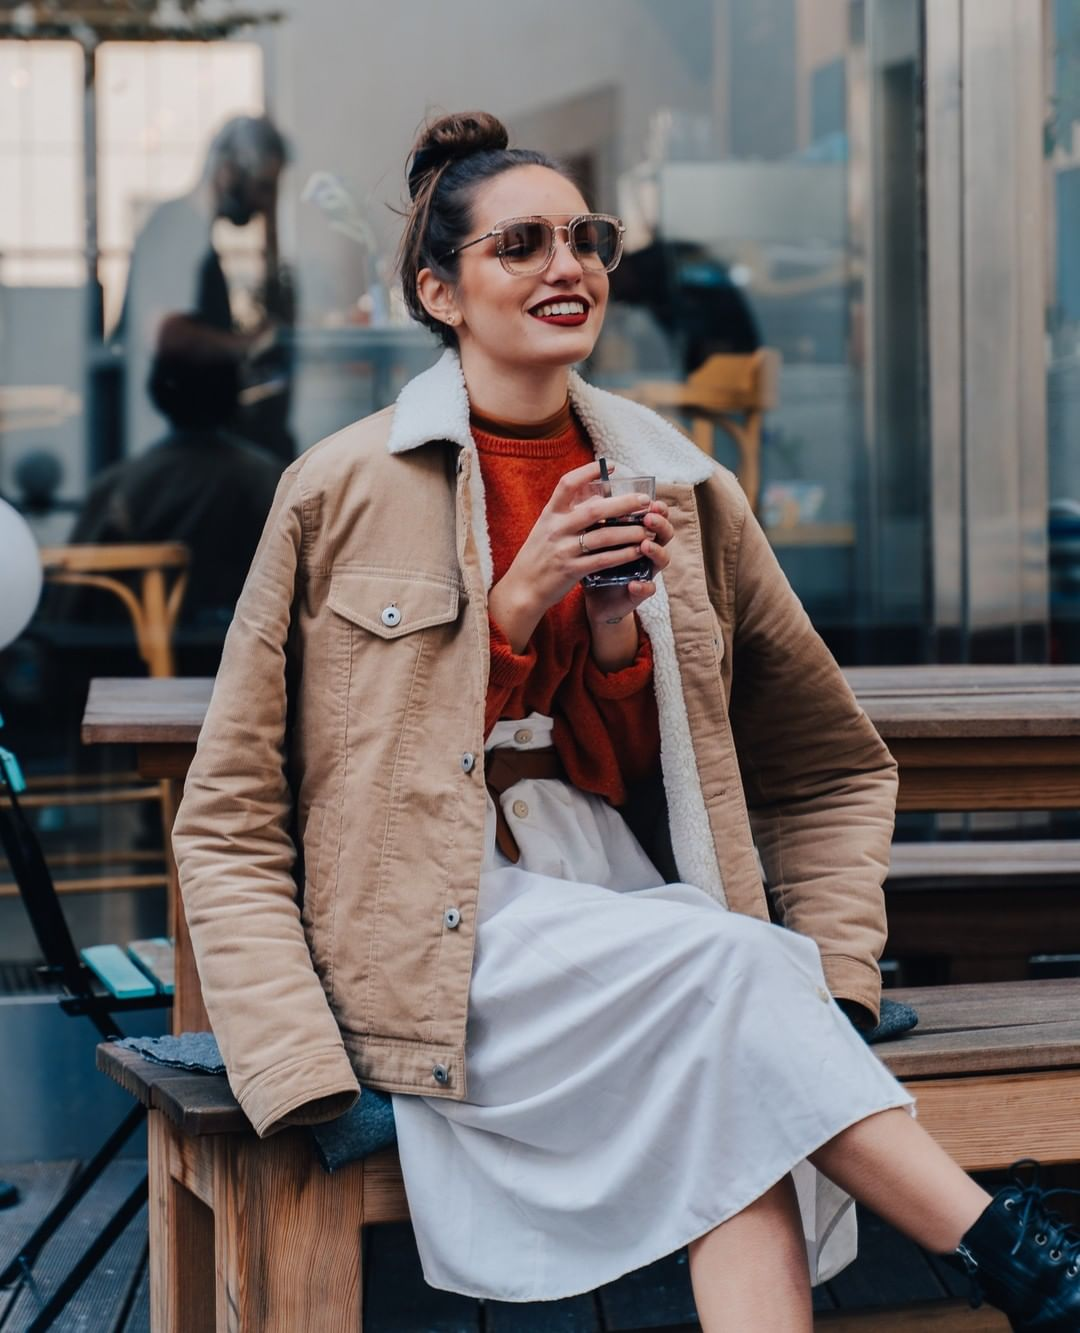 Get inspired by this #FashionFriday  Here's how to tackle the change of season in style: your trusty sherpa corduroy jacket, a pair of fabulous #JimmyChoo shades and your favorite lipstick. Done! ⁠ ⁠ #lentiamo #springvibe ⁠